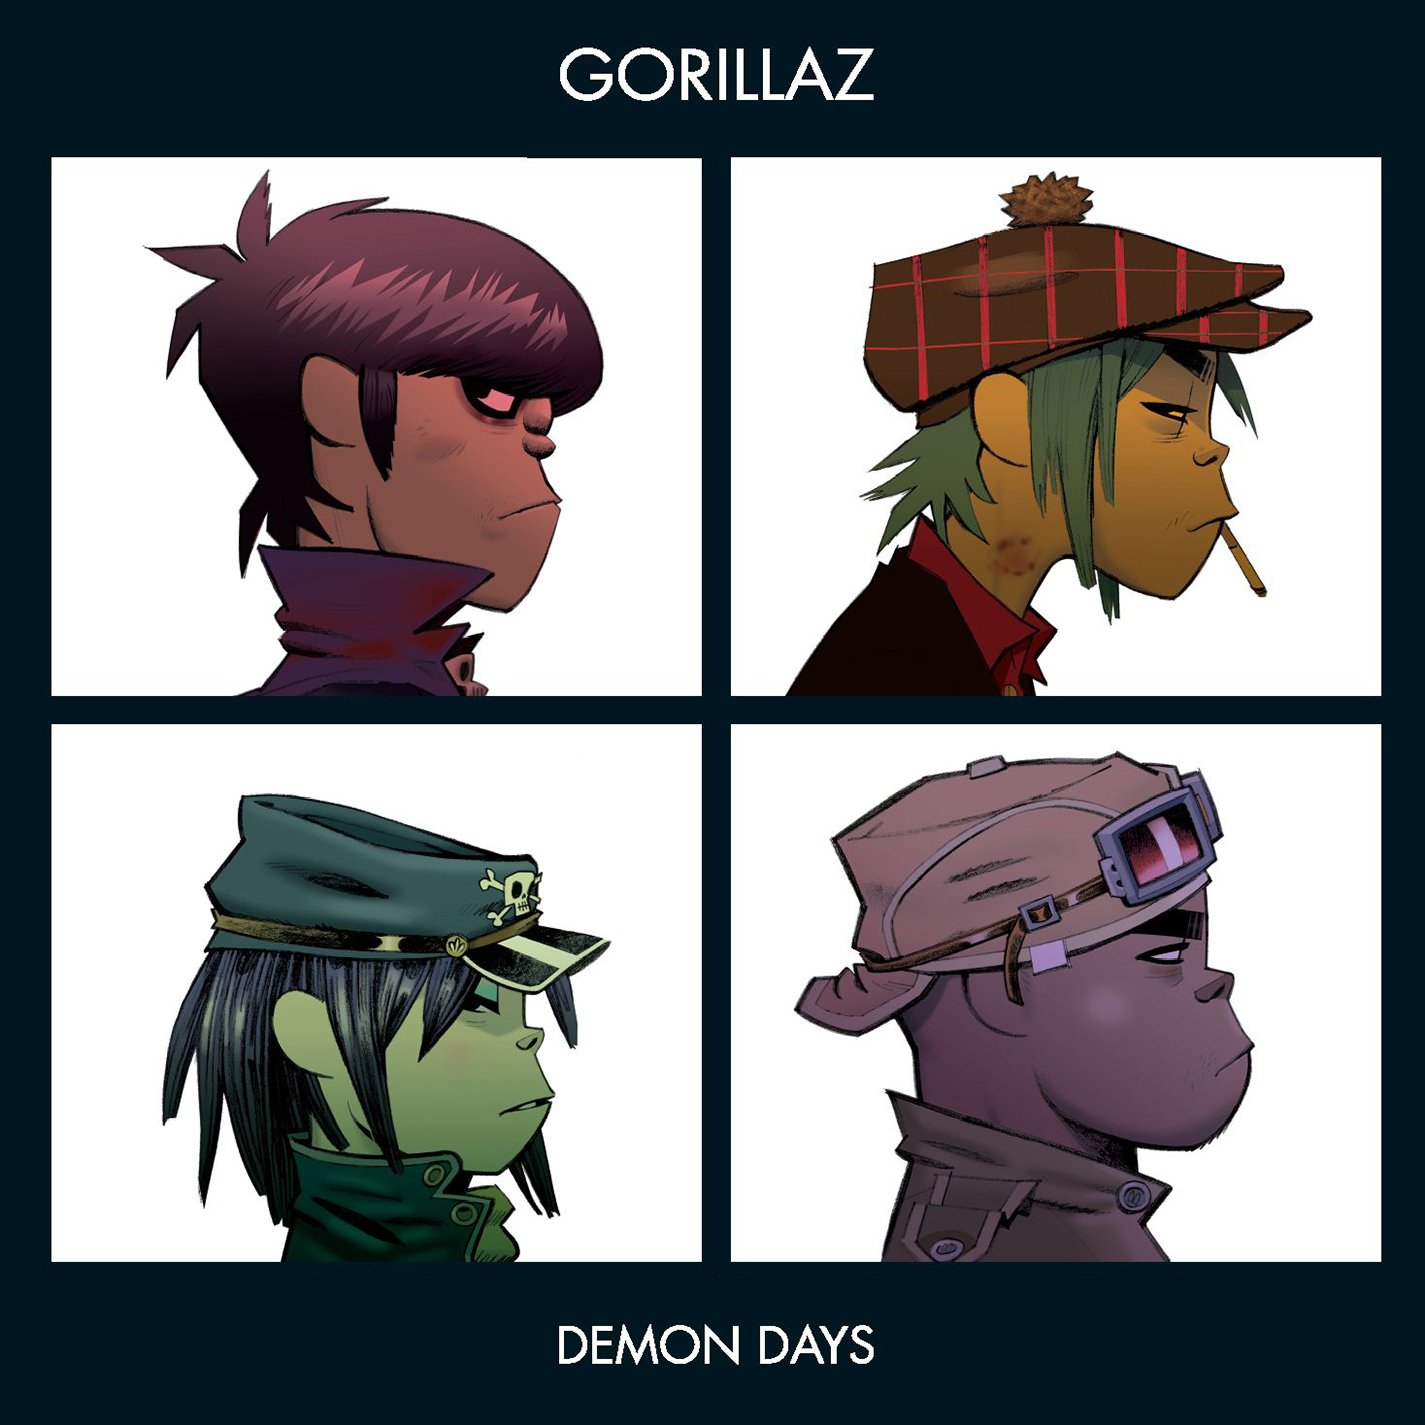 CD : Gorillaz - Demon Days (CD)